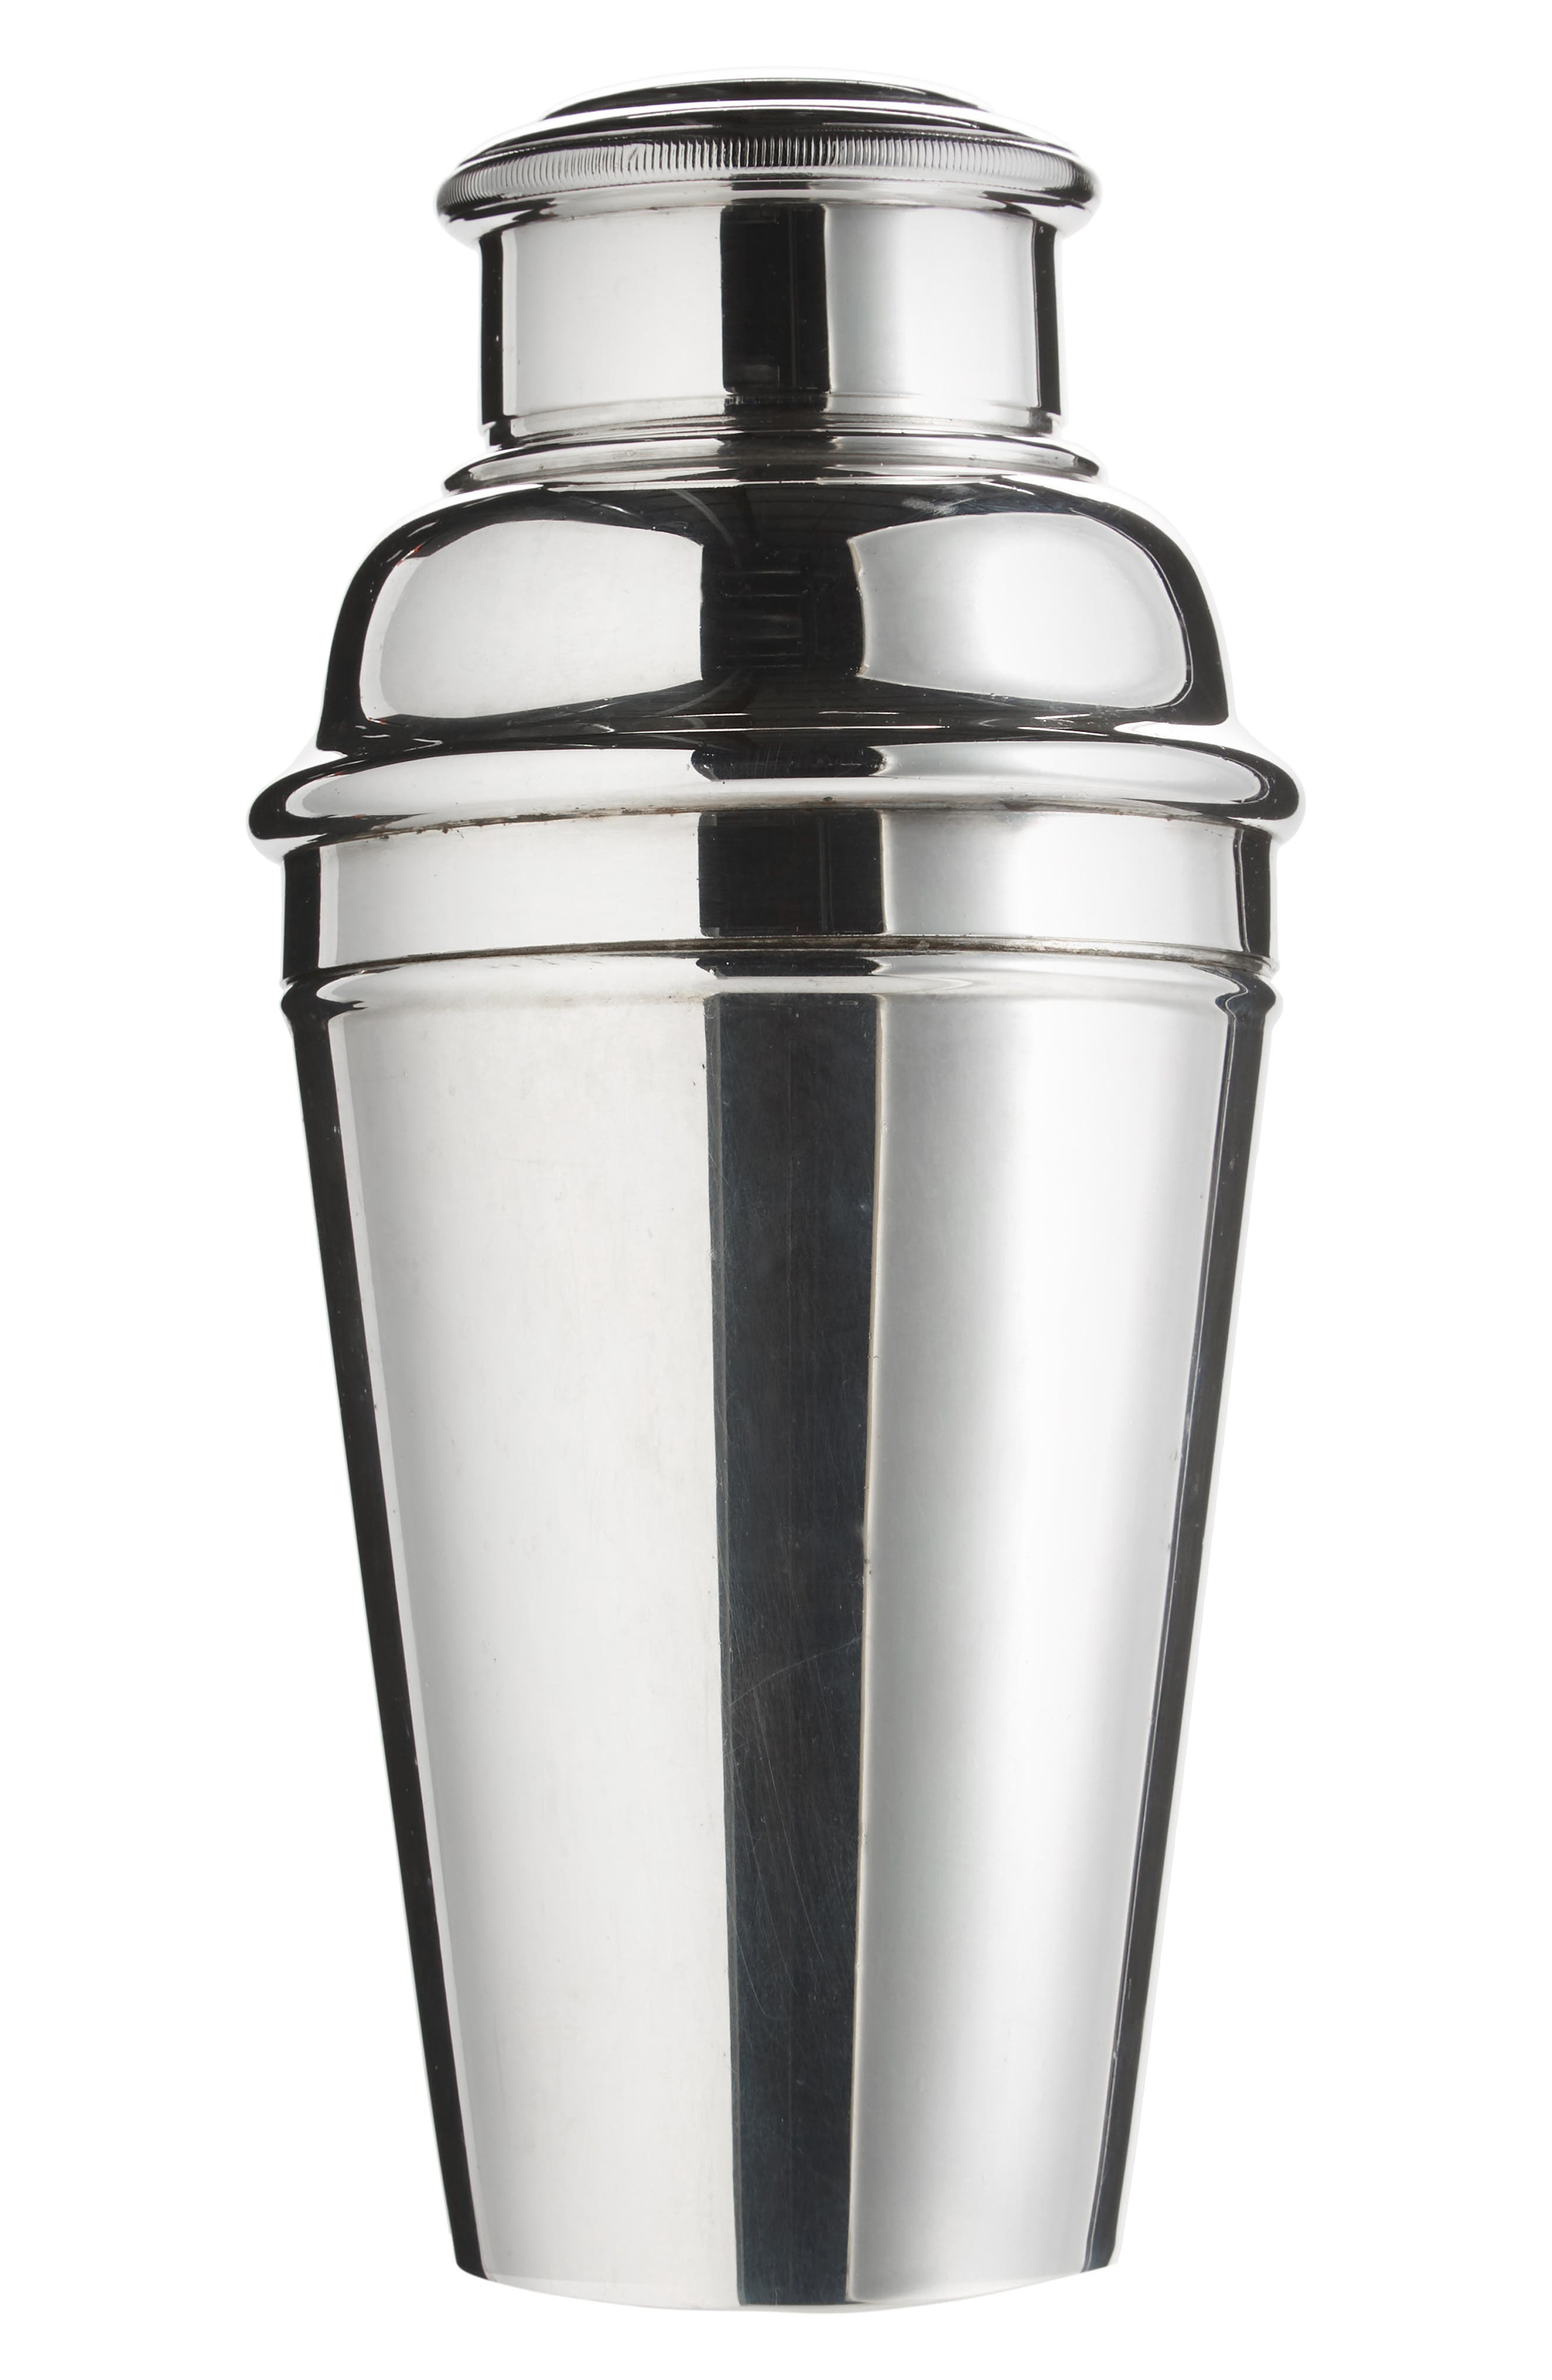 One of a Kind Vintage Silver Plated Cocktail Shaker,                             Main thumbnail 1, color,                             Silver